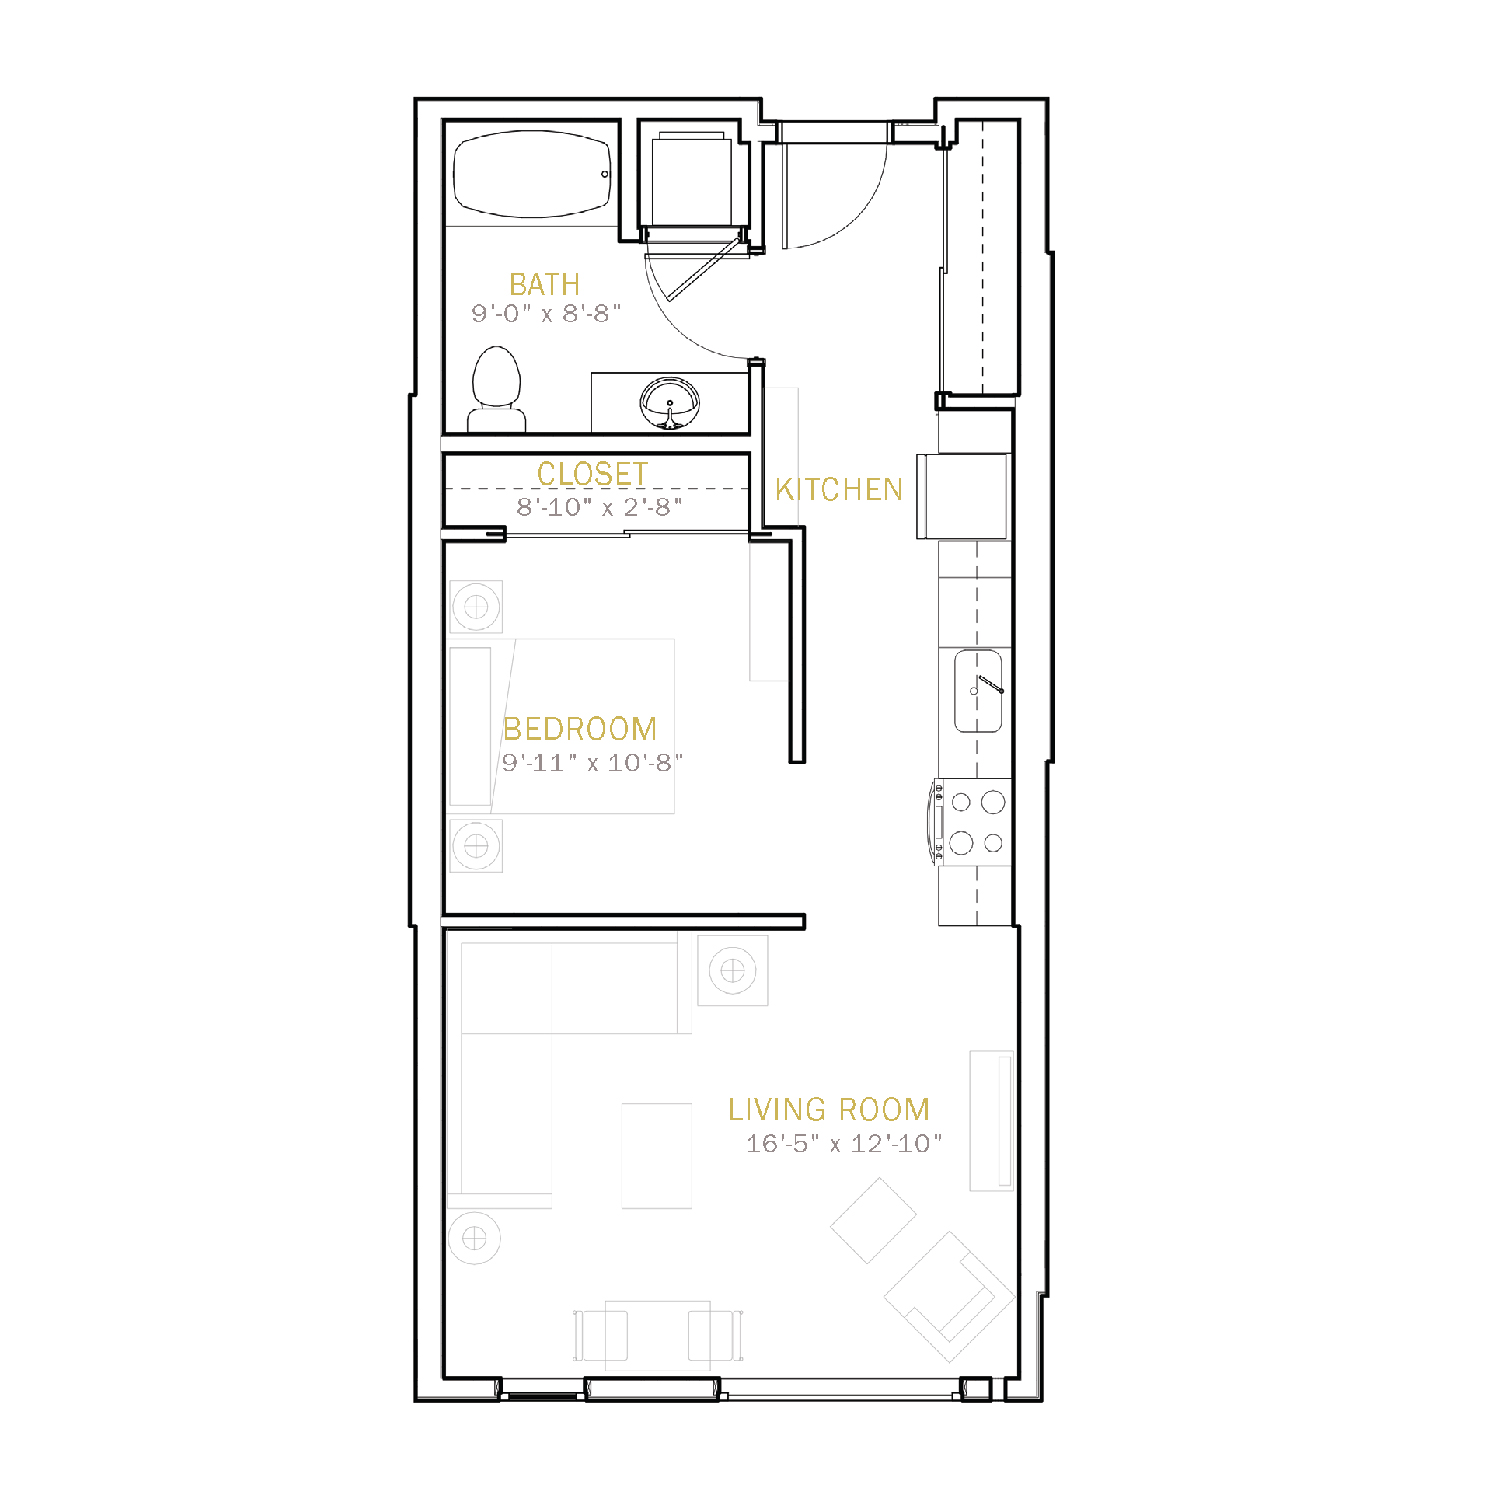 B One floor plan diagram. One bedroom, one bathroom, and an open kitchen and living area.